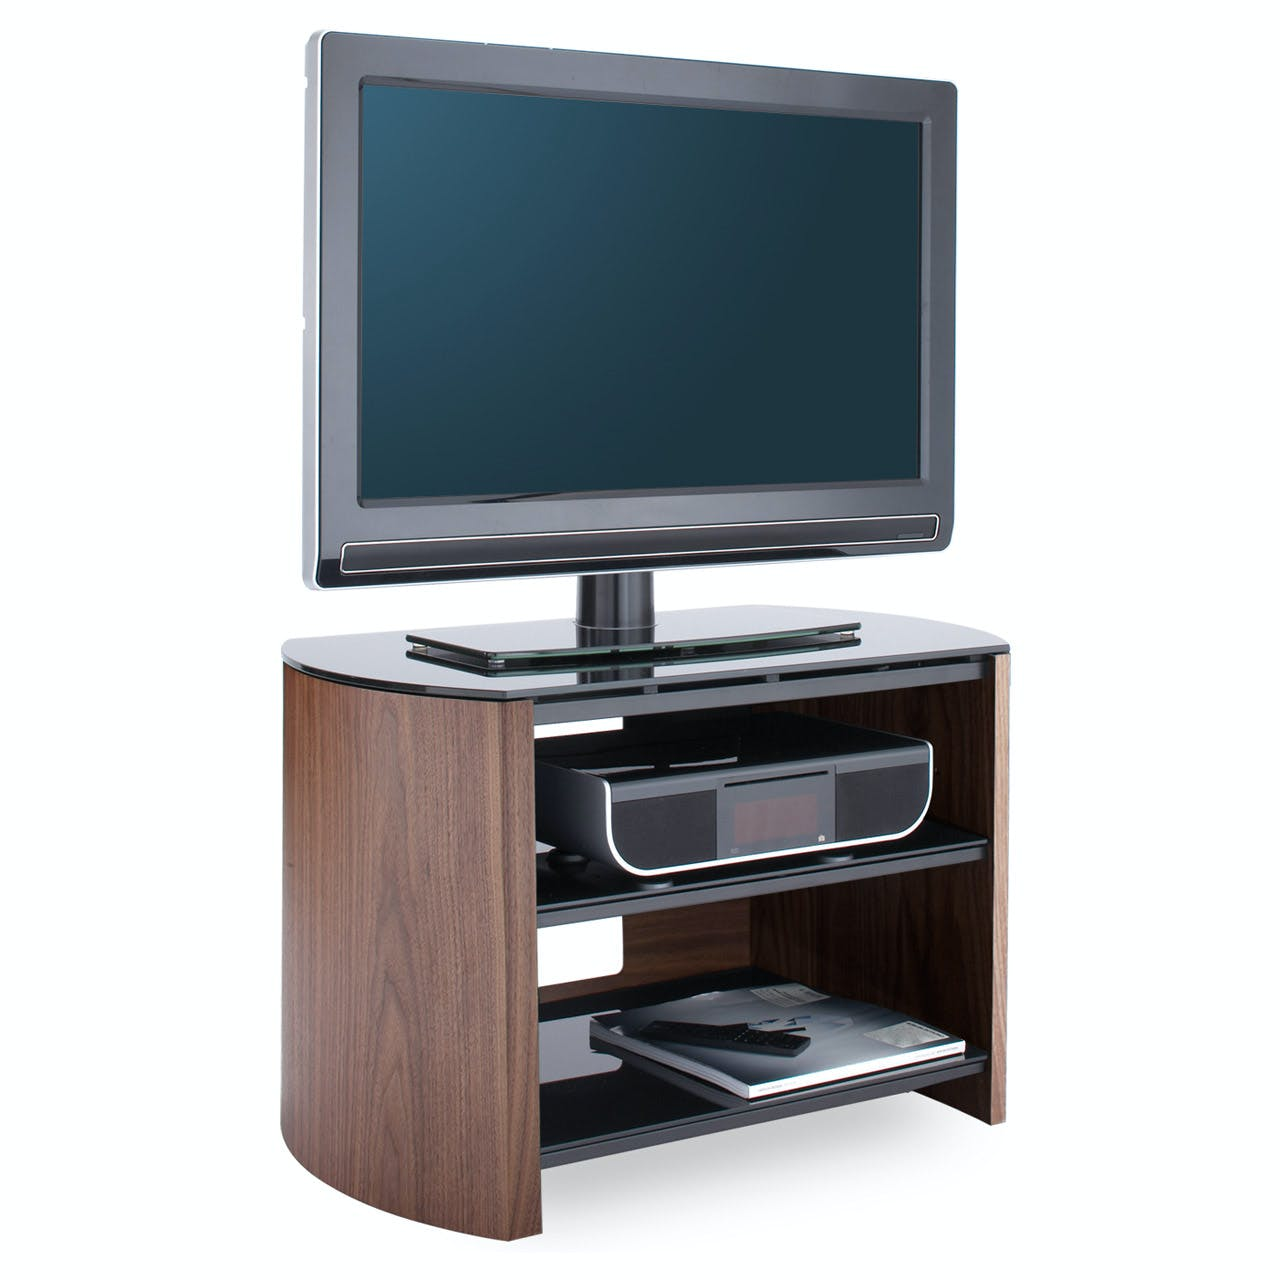 Alphason Meuble Tv Alphason Fw750 Wb Finewoods Tv Cabinet 750mm Wide In Walnut